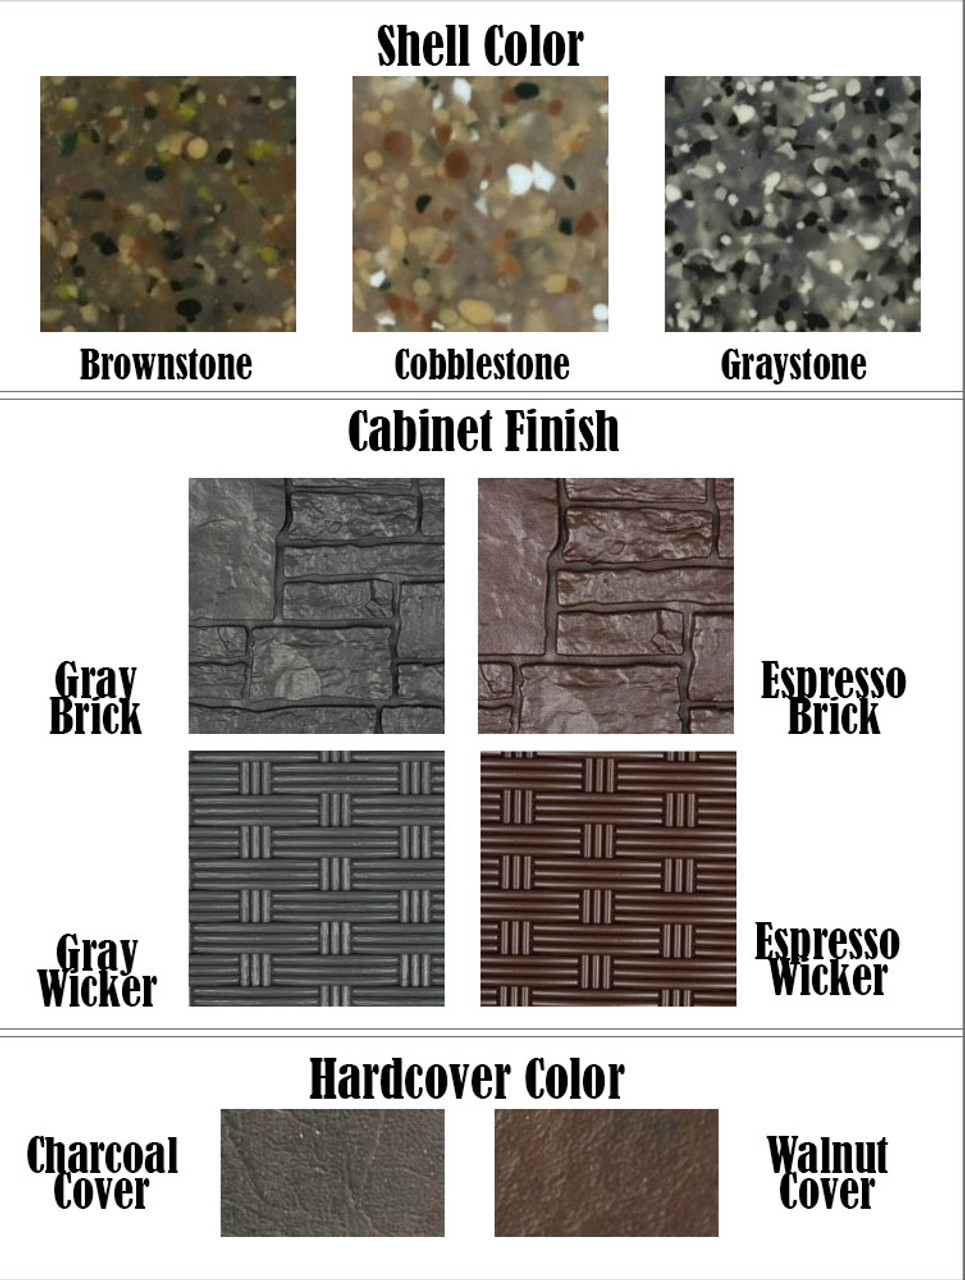 EZ Spa Cabinet Finishes & Shell Color Options